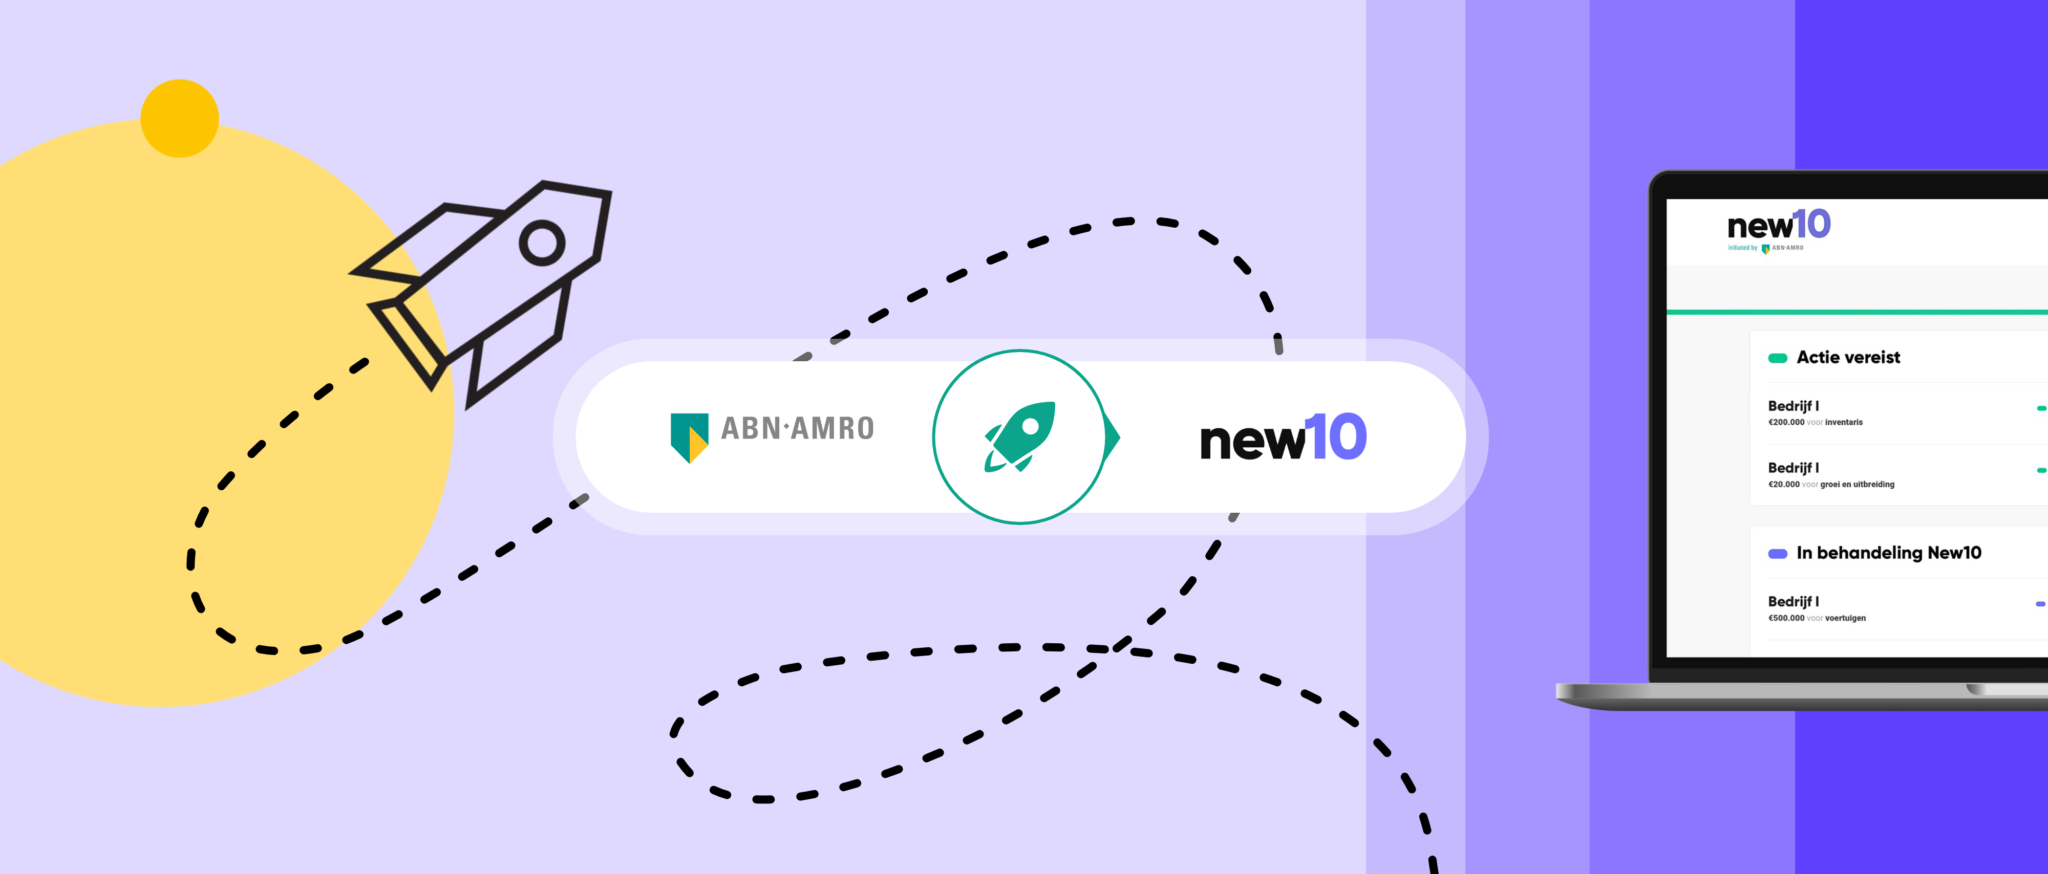 ABN AMRO's New10: A fully digital approach to business lending